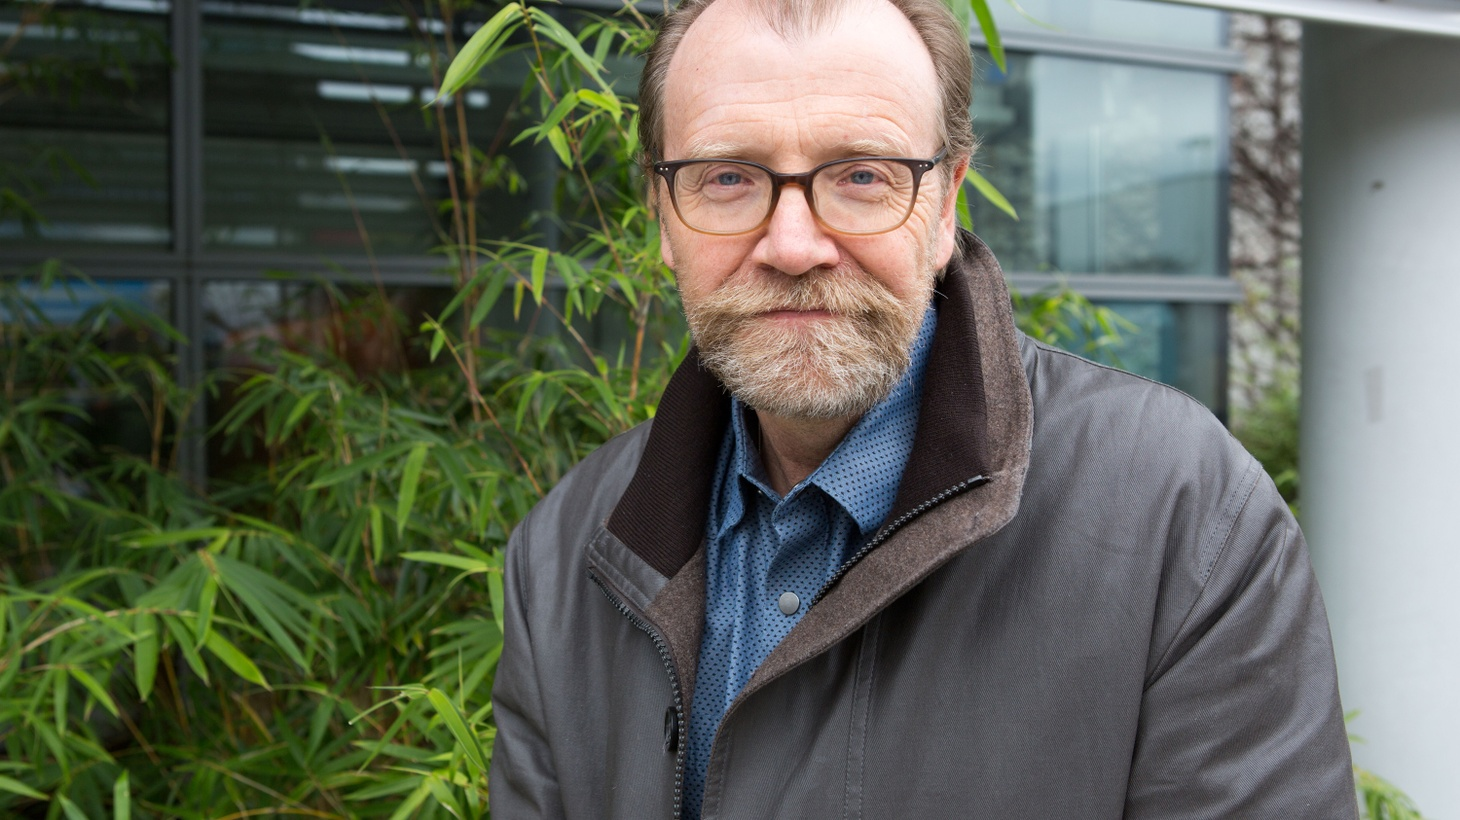 Known for the outrageous comedy of his acclaimed short stories, George Saunders says that daring to write this novel about grief, loss and the journey of the soul was like jumping off a cliff. [REPEAT]